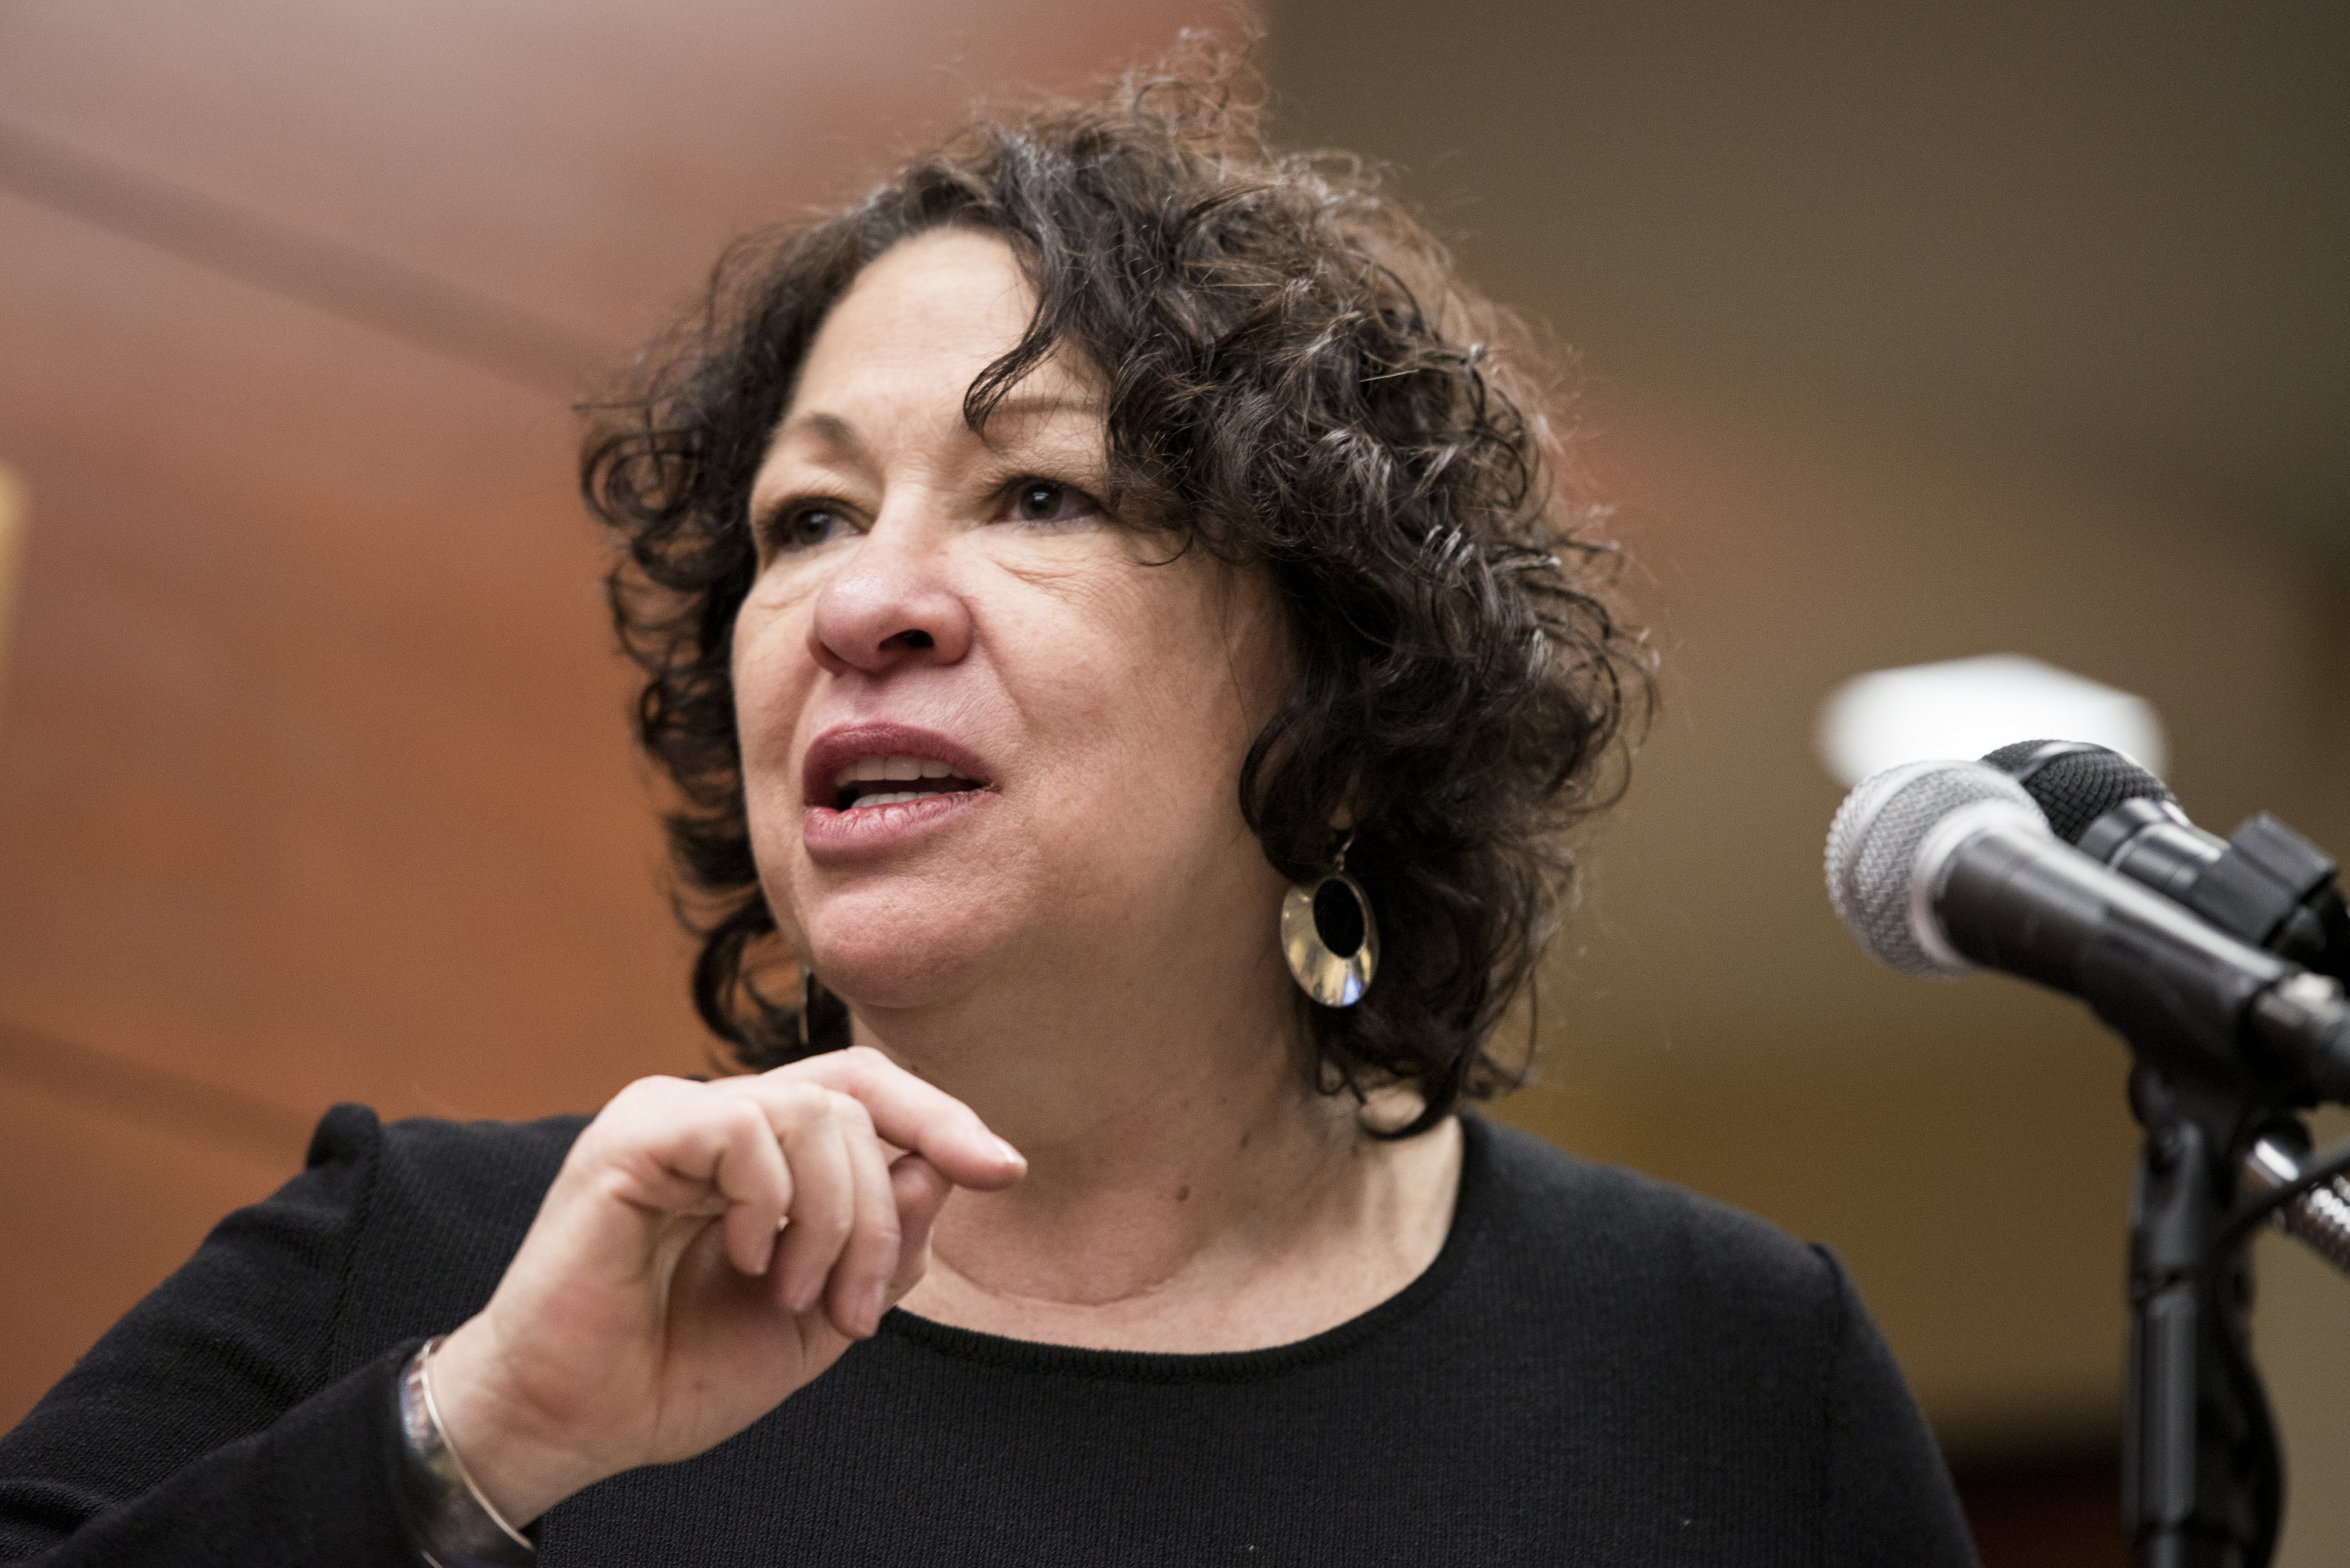 Sonia sotomayor on gay rights